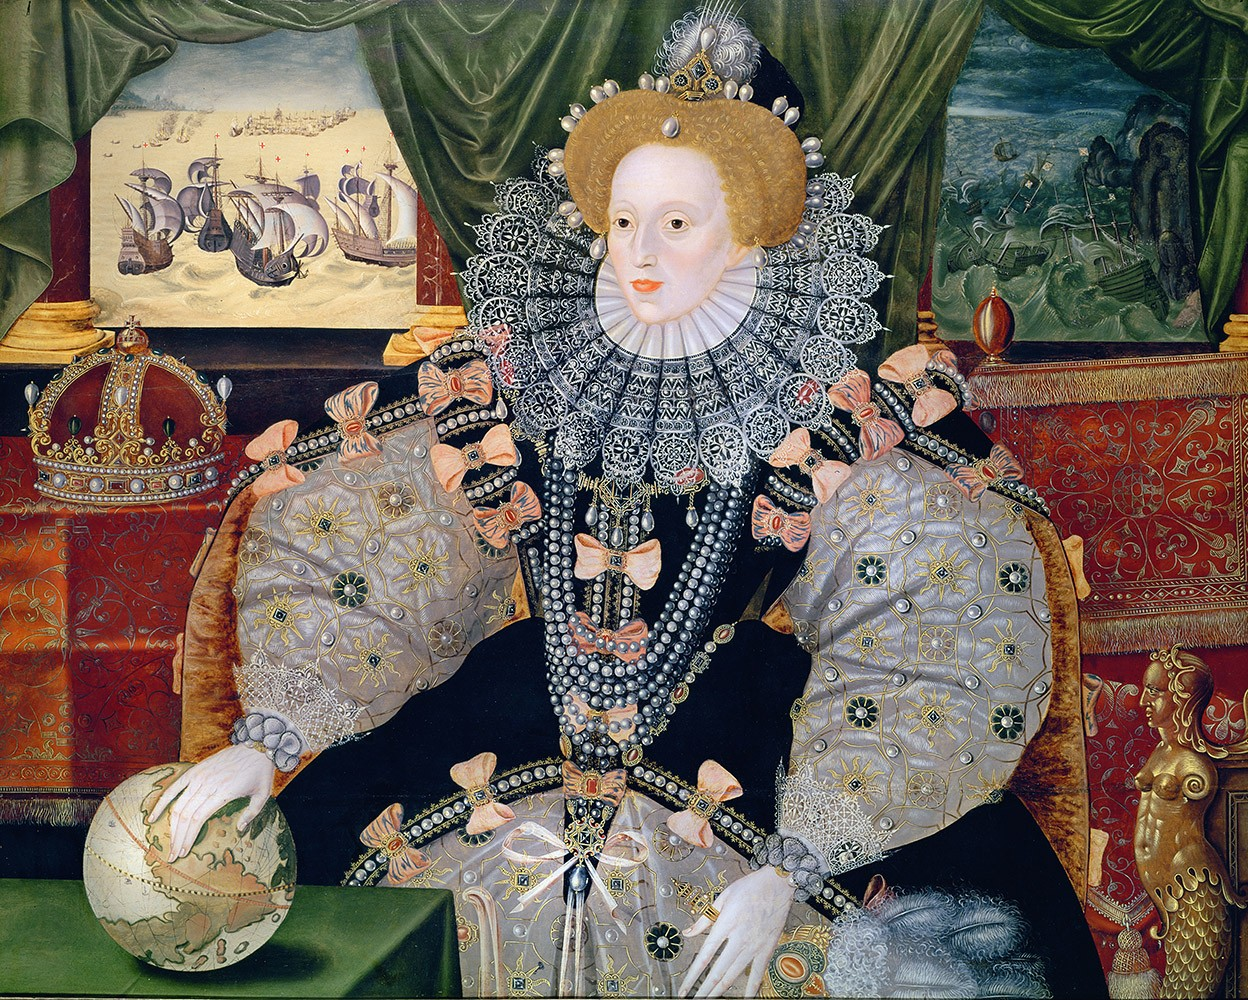 Portrait commemorating the defeat of the Spanish Armada, depicted in the background. Elizabeth's hand rests on the globe, symbolising her international power. One of three known versions of the